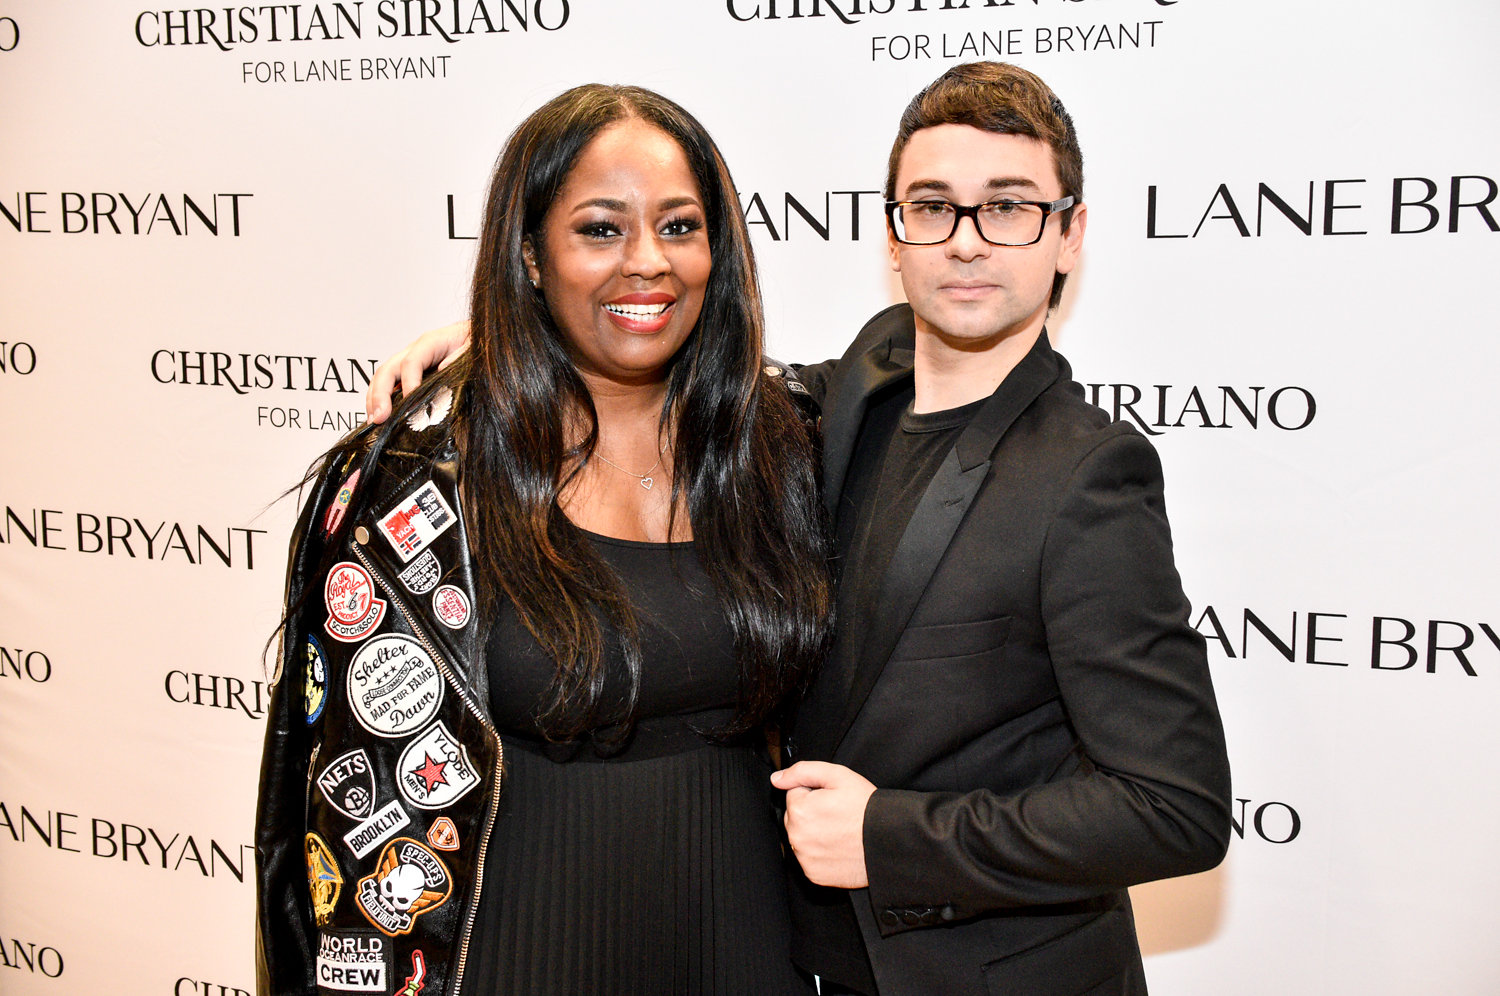 Meet & Greet With Fashion Designer Christian Sirano At Lane Bryant NYC!